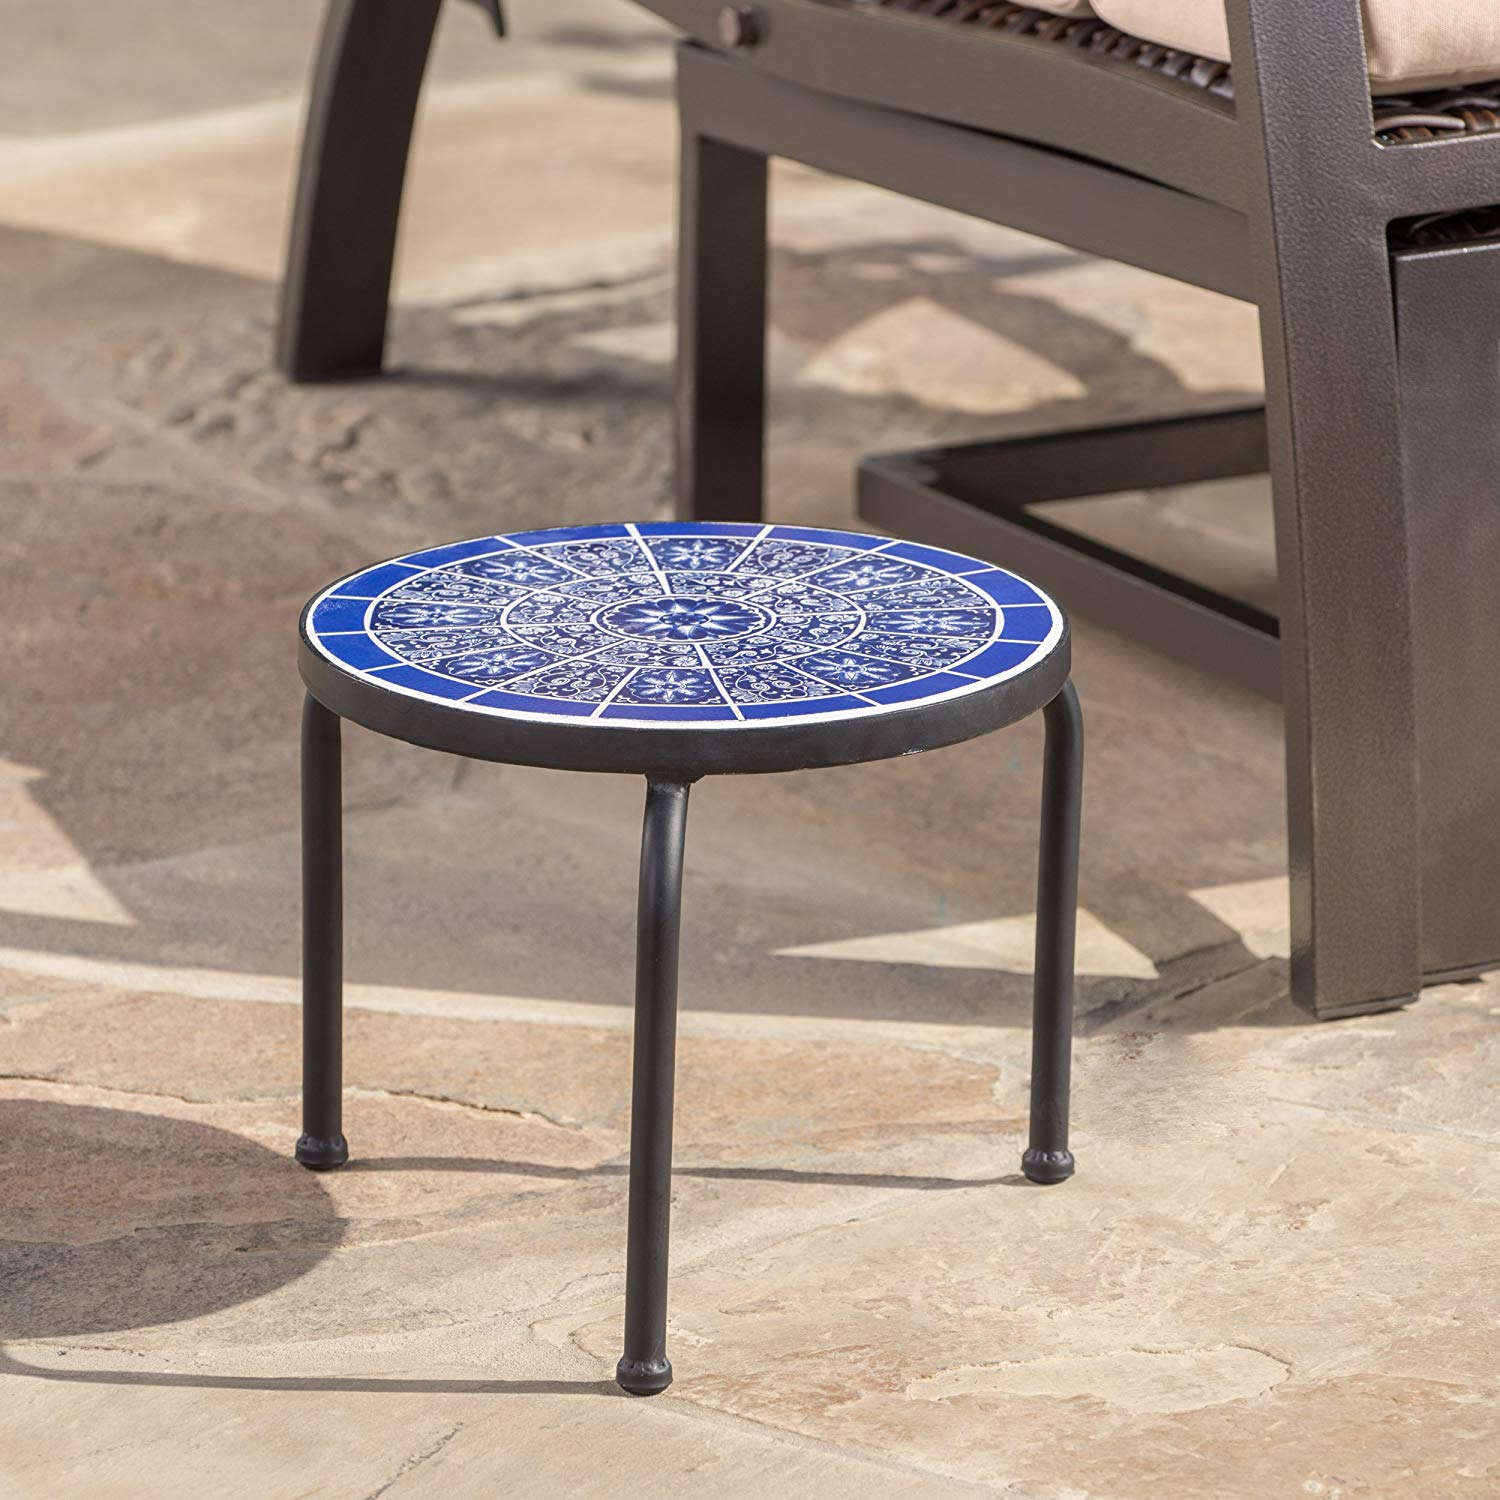 soleil outdoor blue white ceramic iron frame tile accent table side garden bunnings chairs and tables clarissa metal emerald green dining cooler extendable wooden folding wood